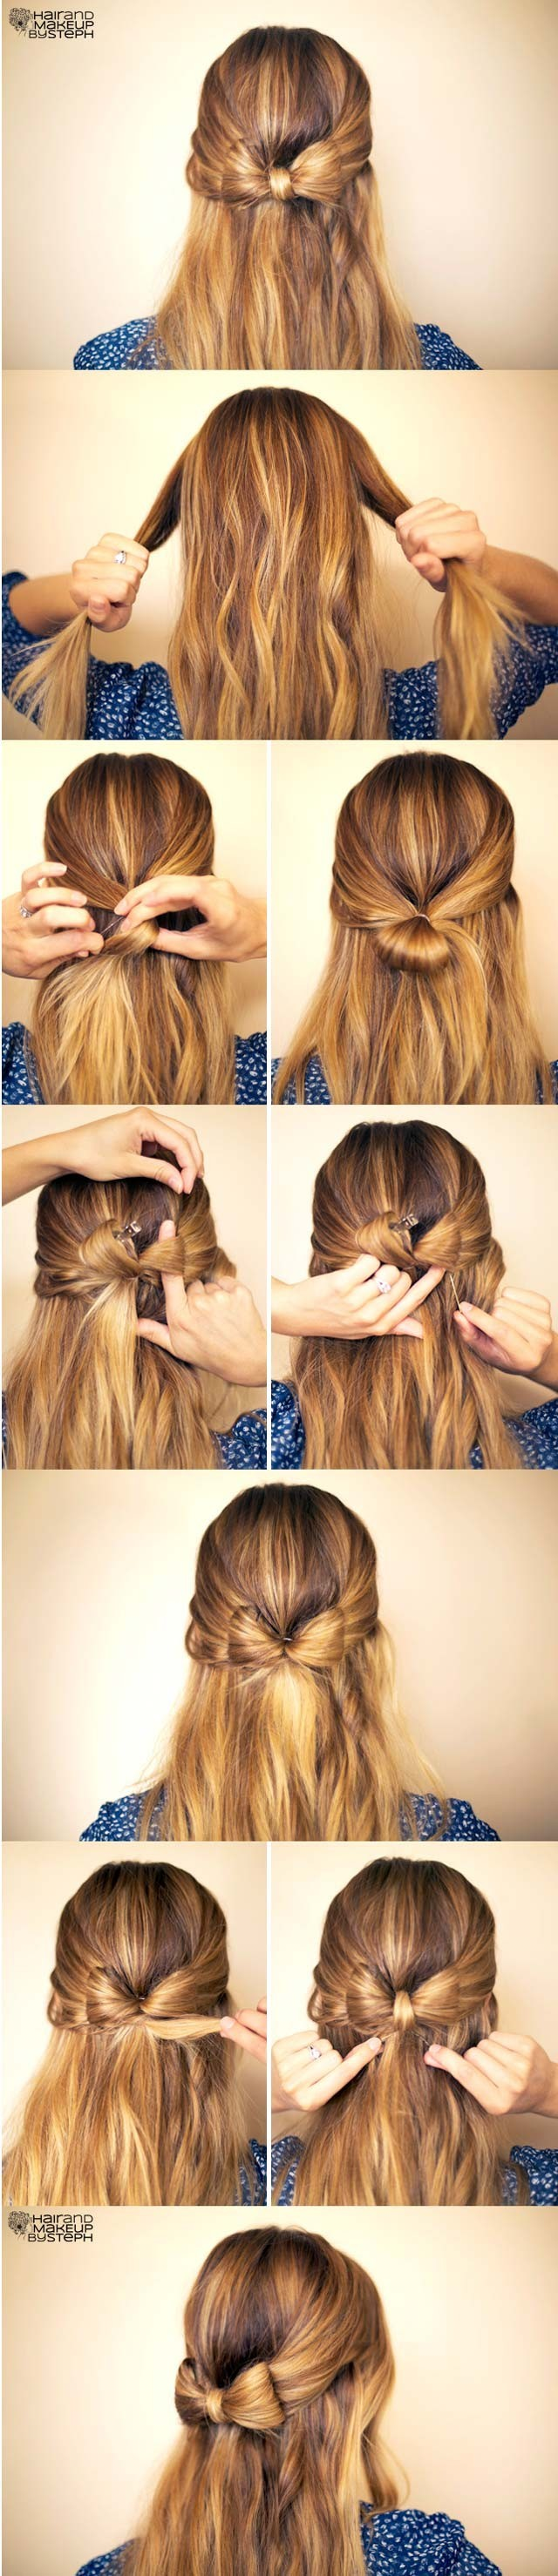 Surprising 15 Cute Hairstyles Step By Step Hairstyles For Long Hair Hairstyle Inspiration Daily Dogsangcom